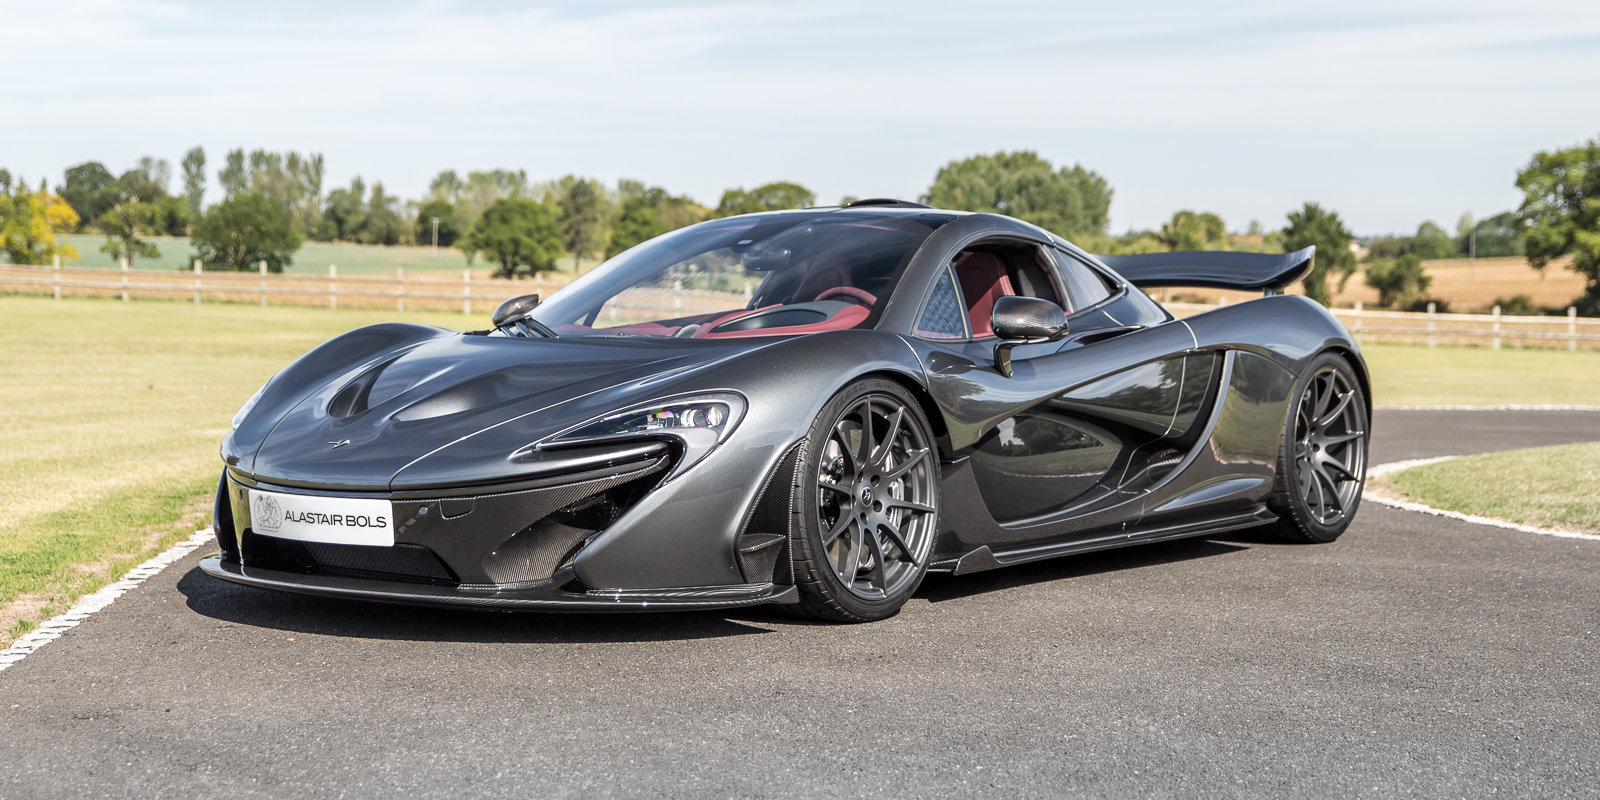 2014 McLaren P1 - UK Supplied, 1 owner & just had major service For Sale (picture 5 of 6)